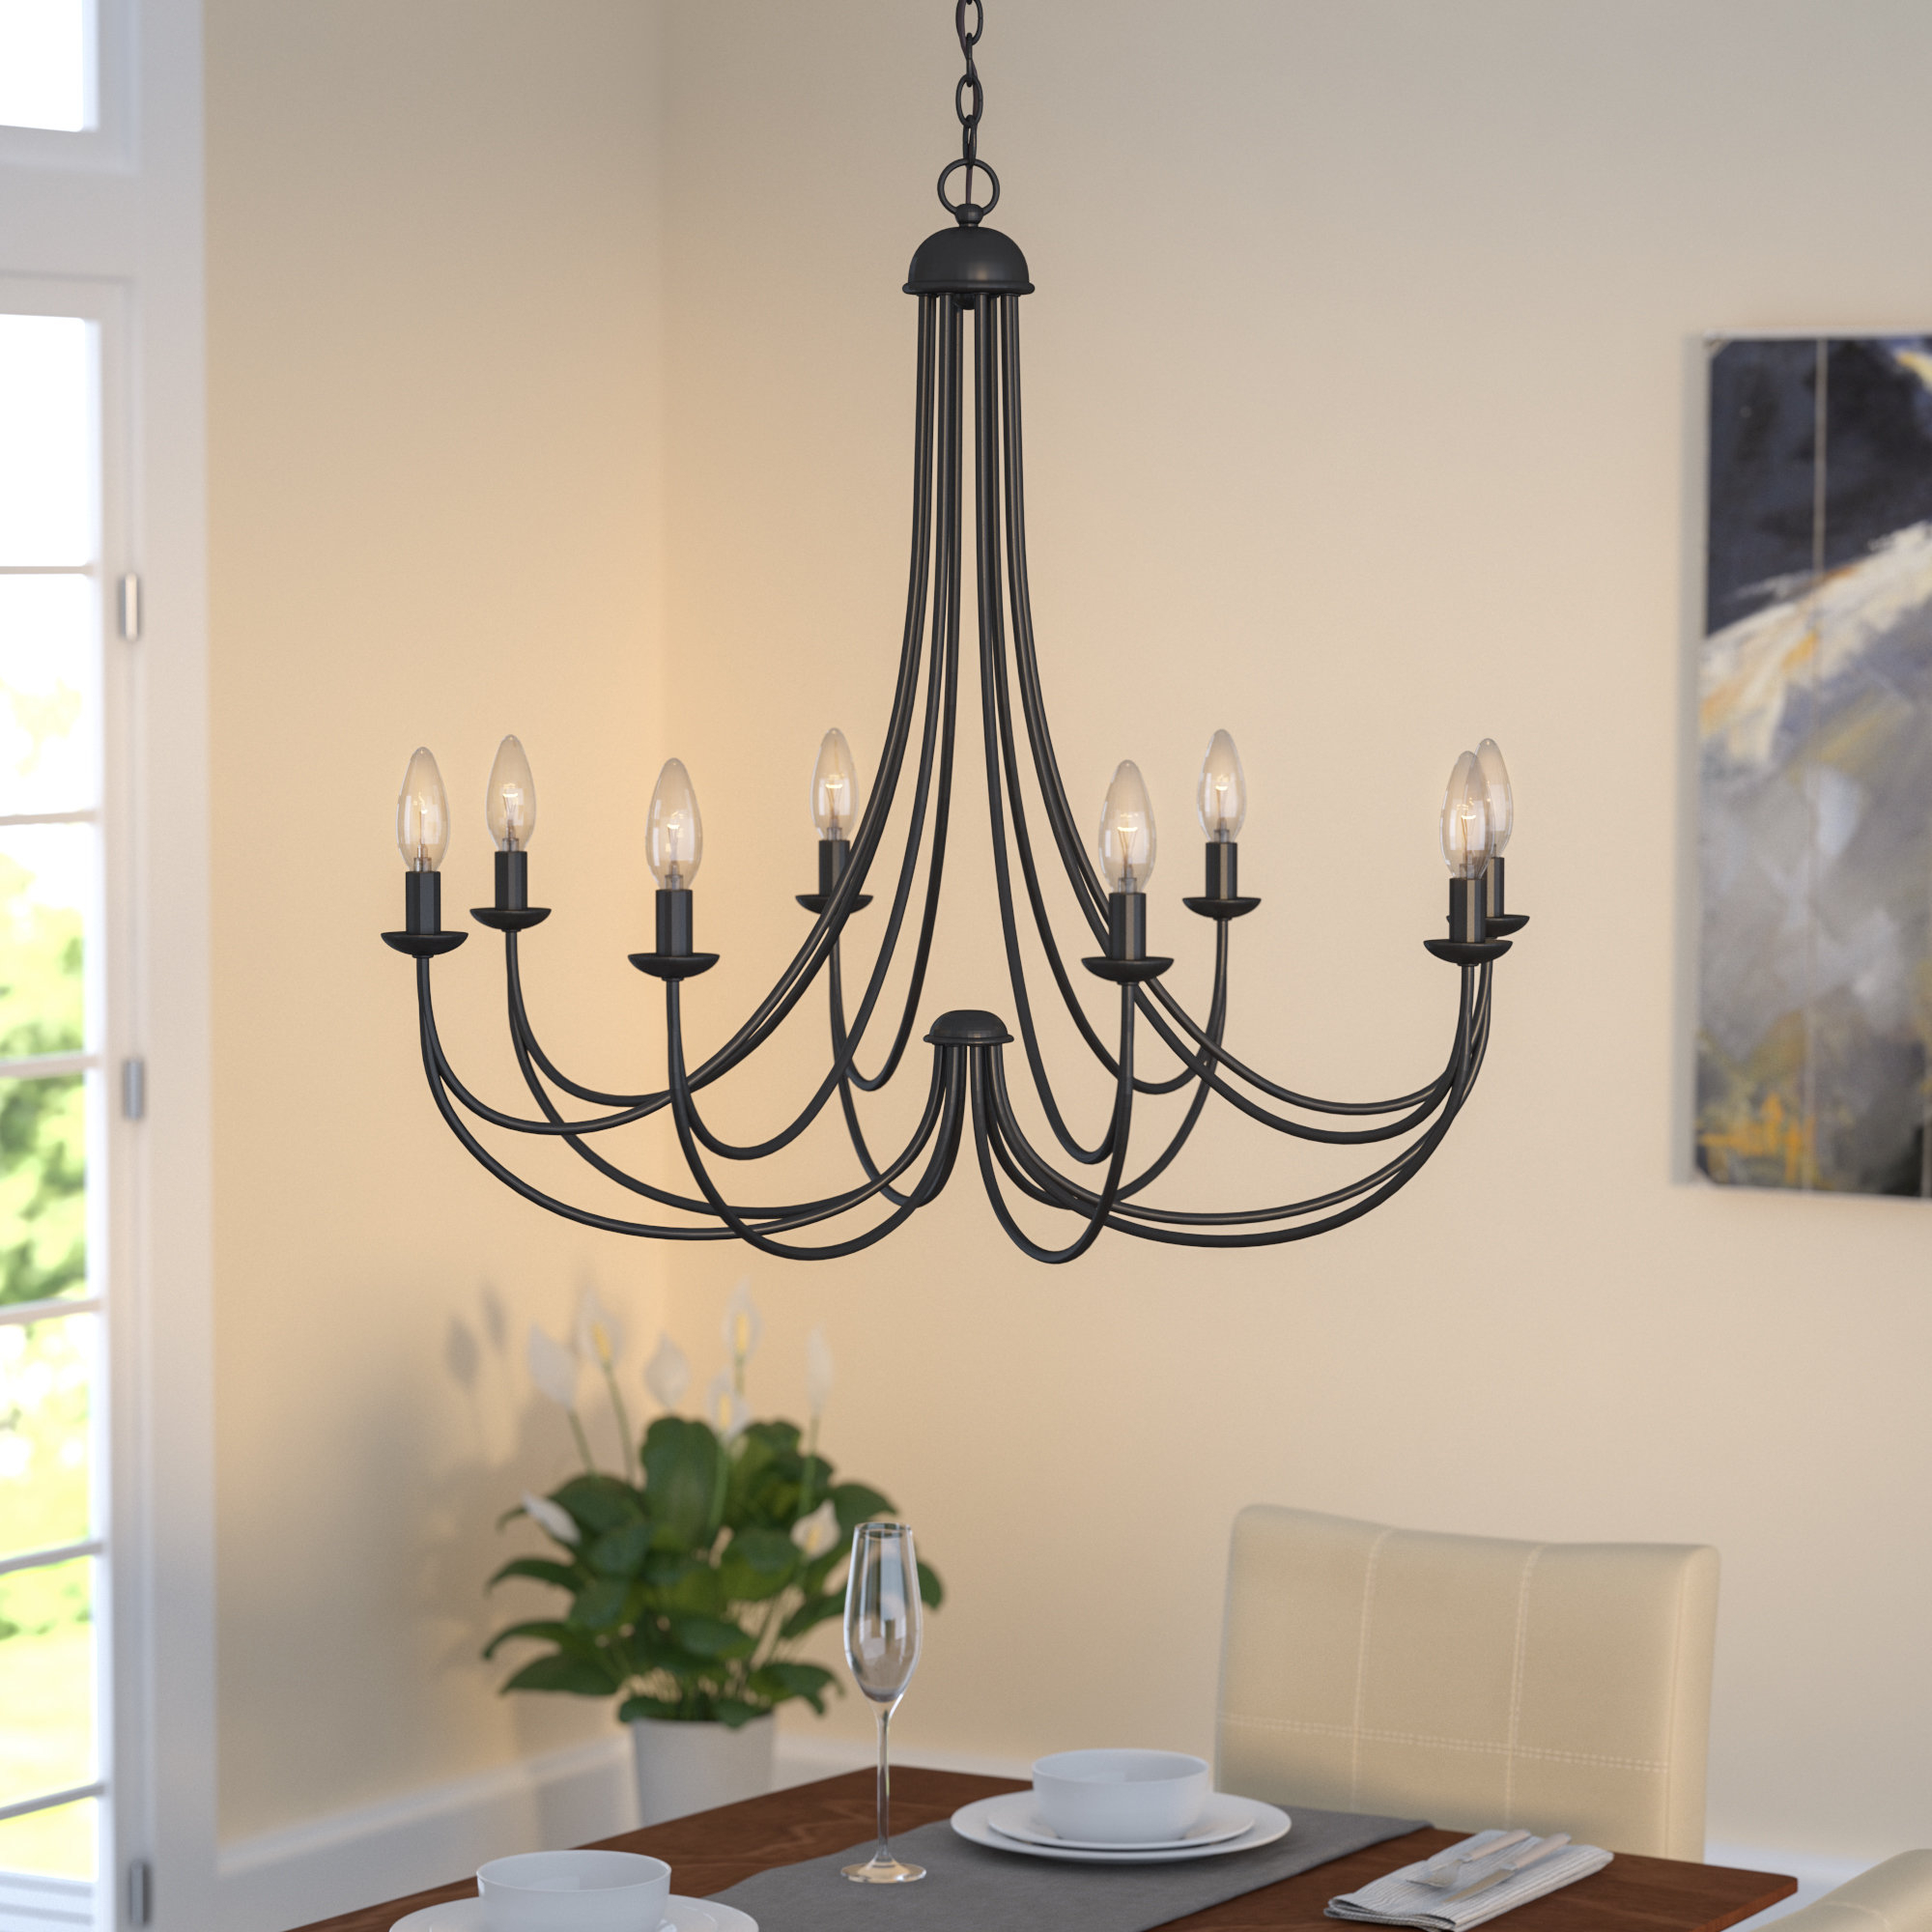 Emilia 8 Light Candle Style Chandelier In Most Up To Date Watford 9 Light Candle Style Chandeliers (Gallery 14 of 25)